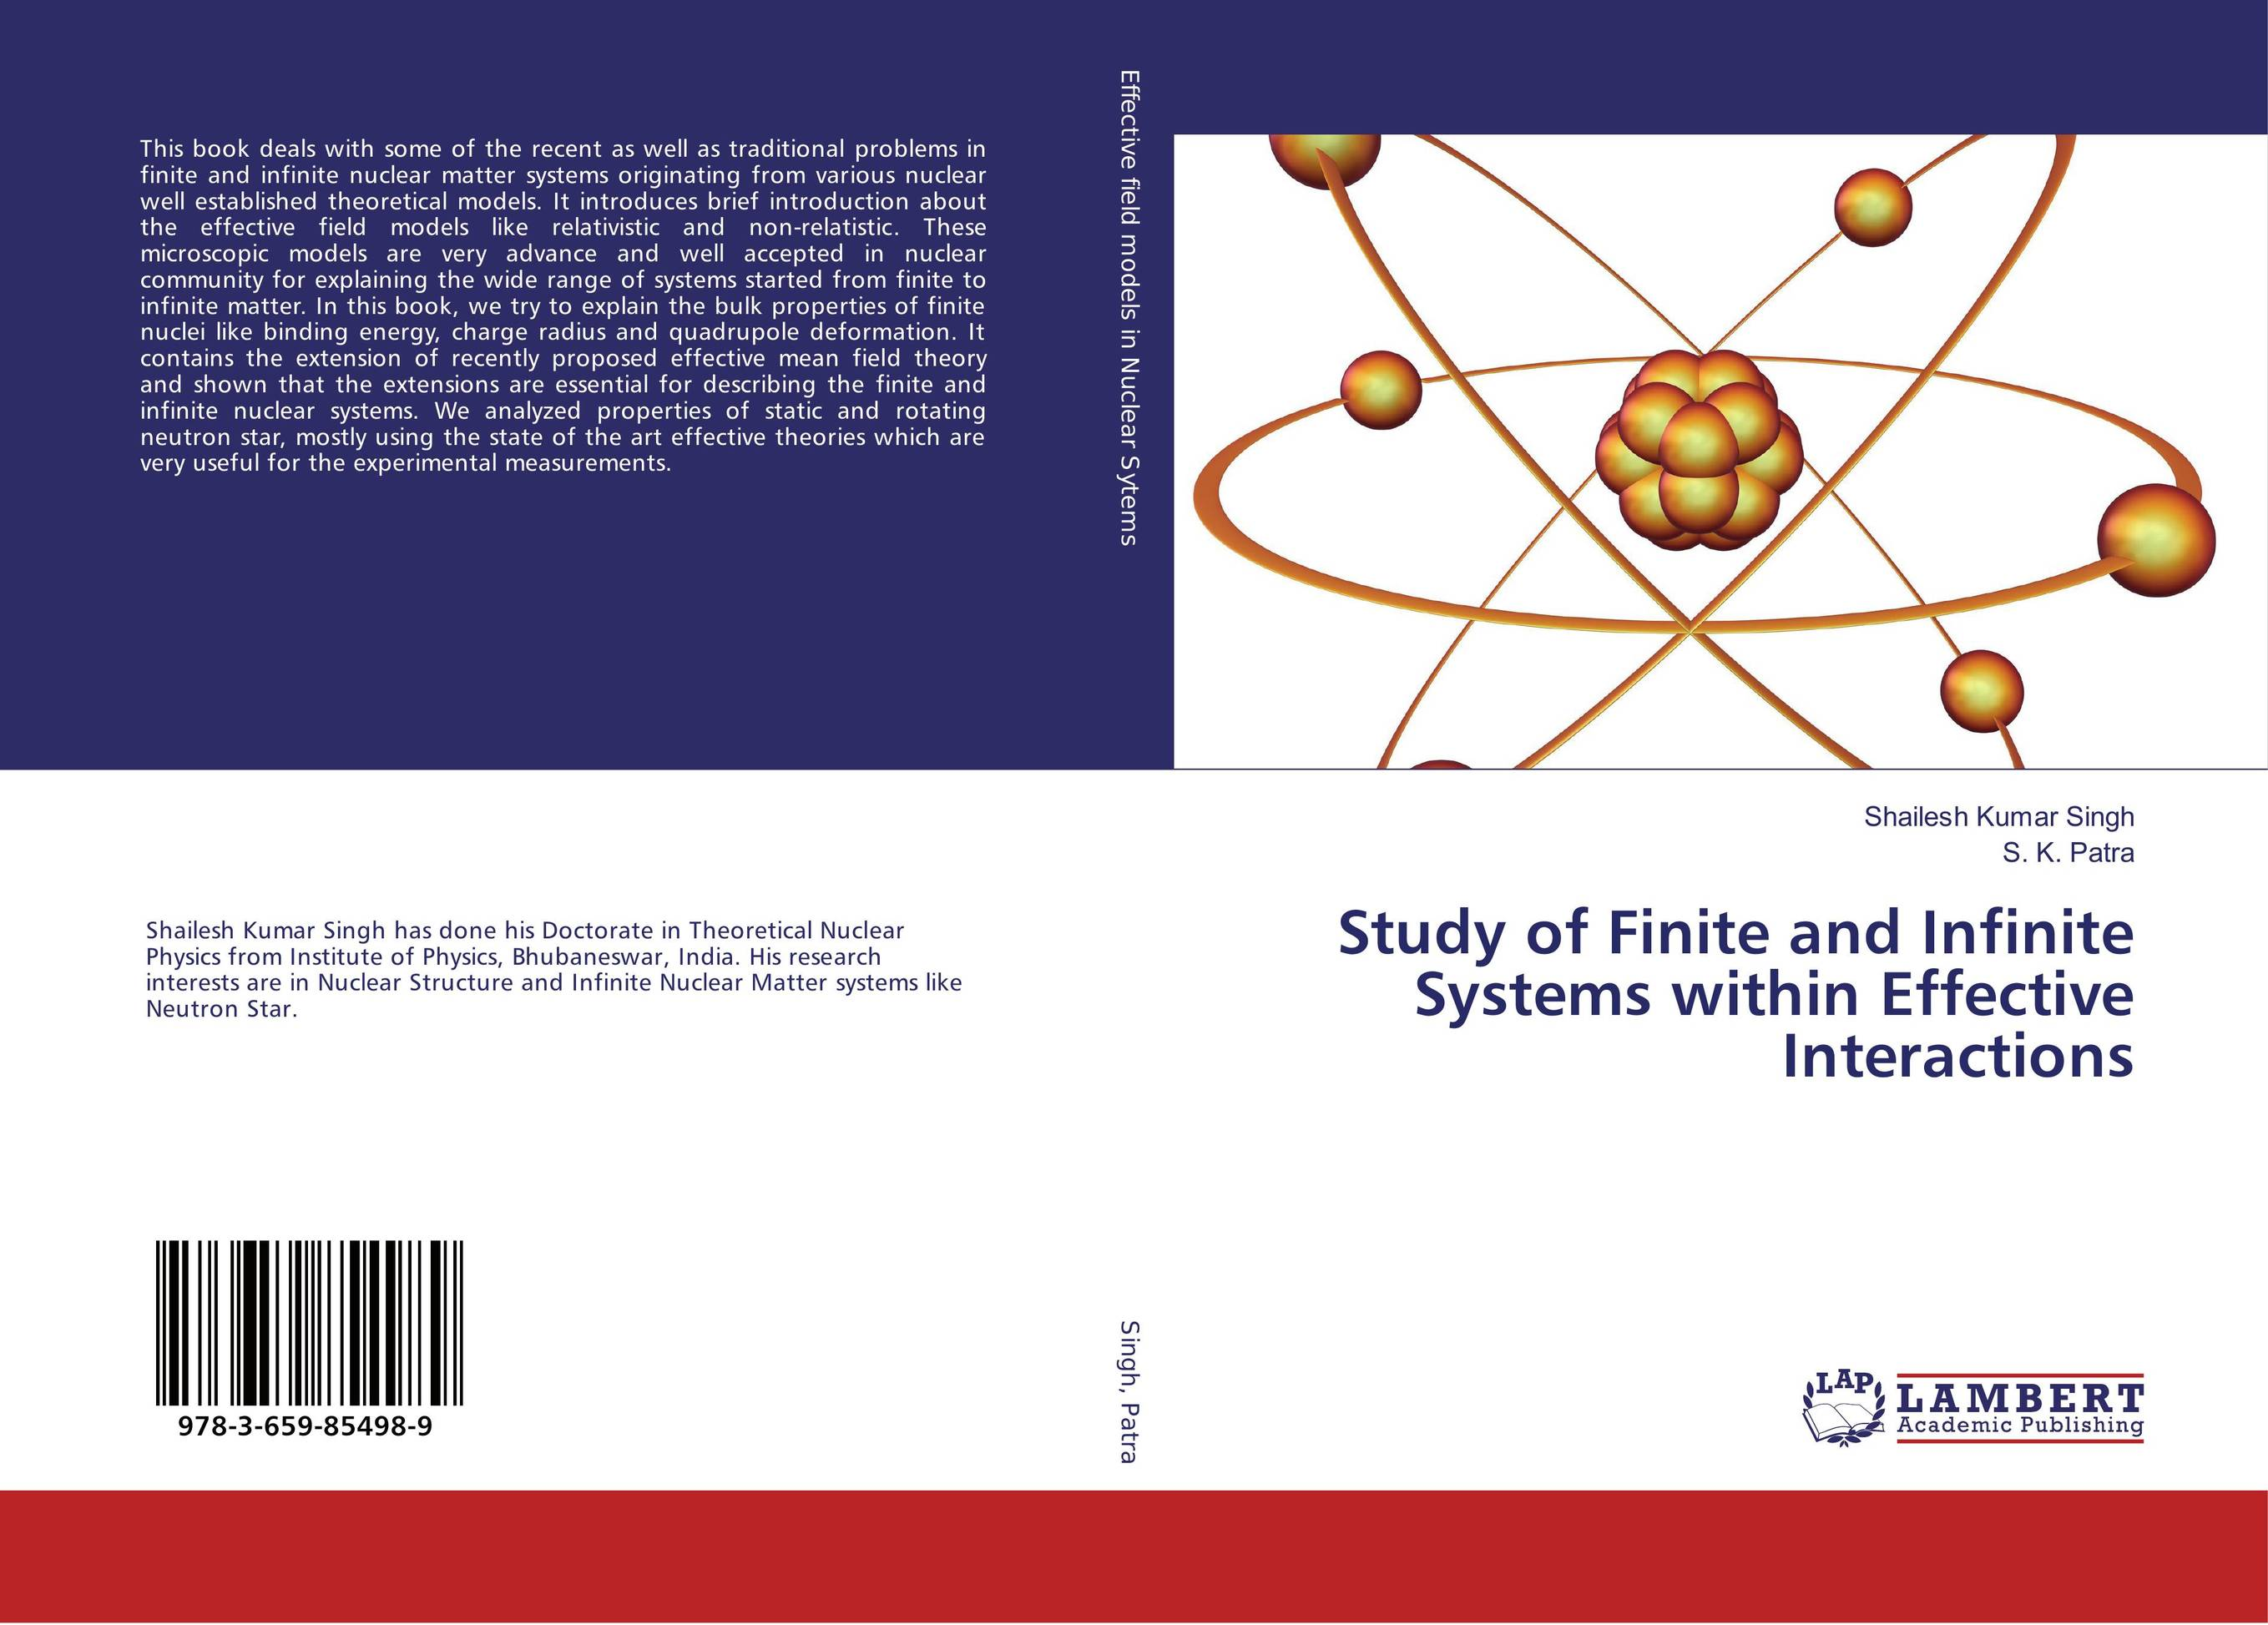 Study of Finite and Infinite Systems within Effective Interactions lidiya strautman introduction to the world of nuclear physics